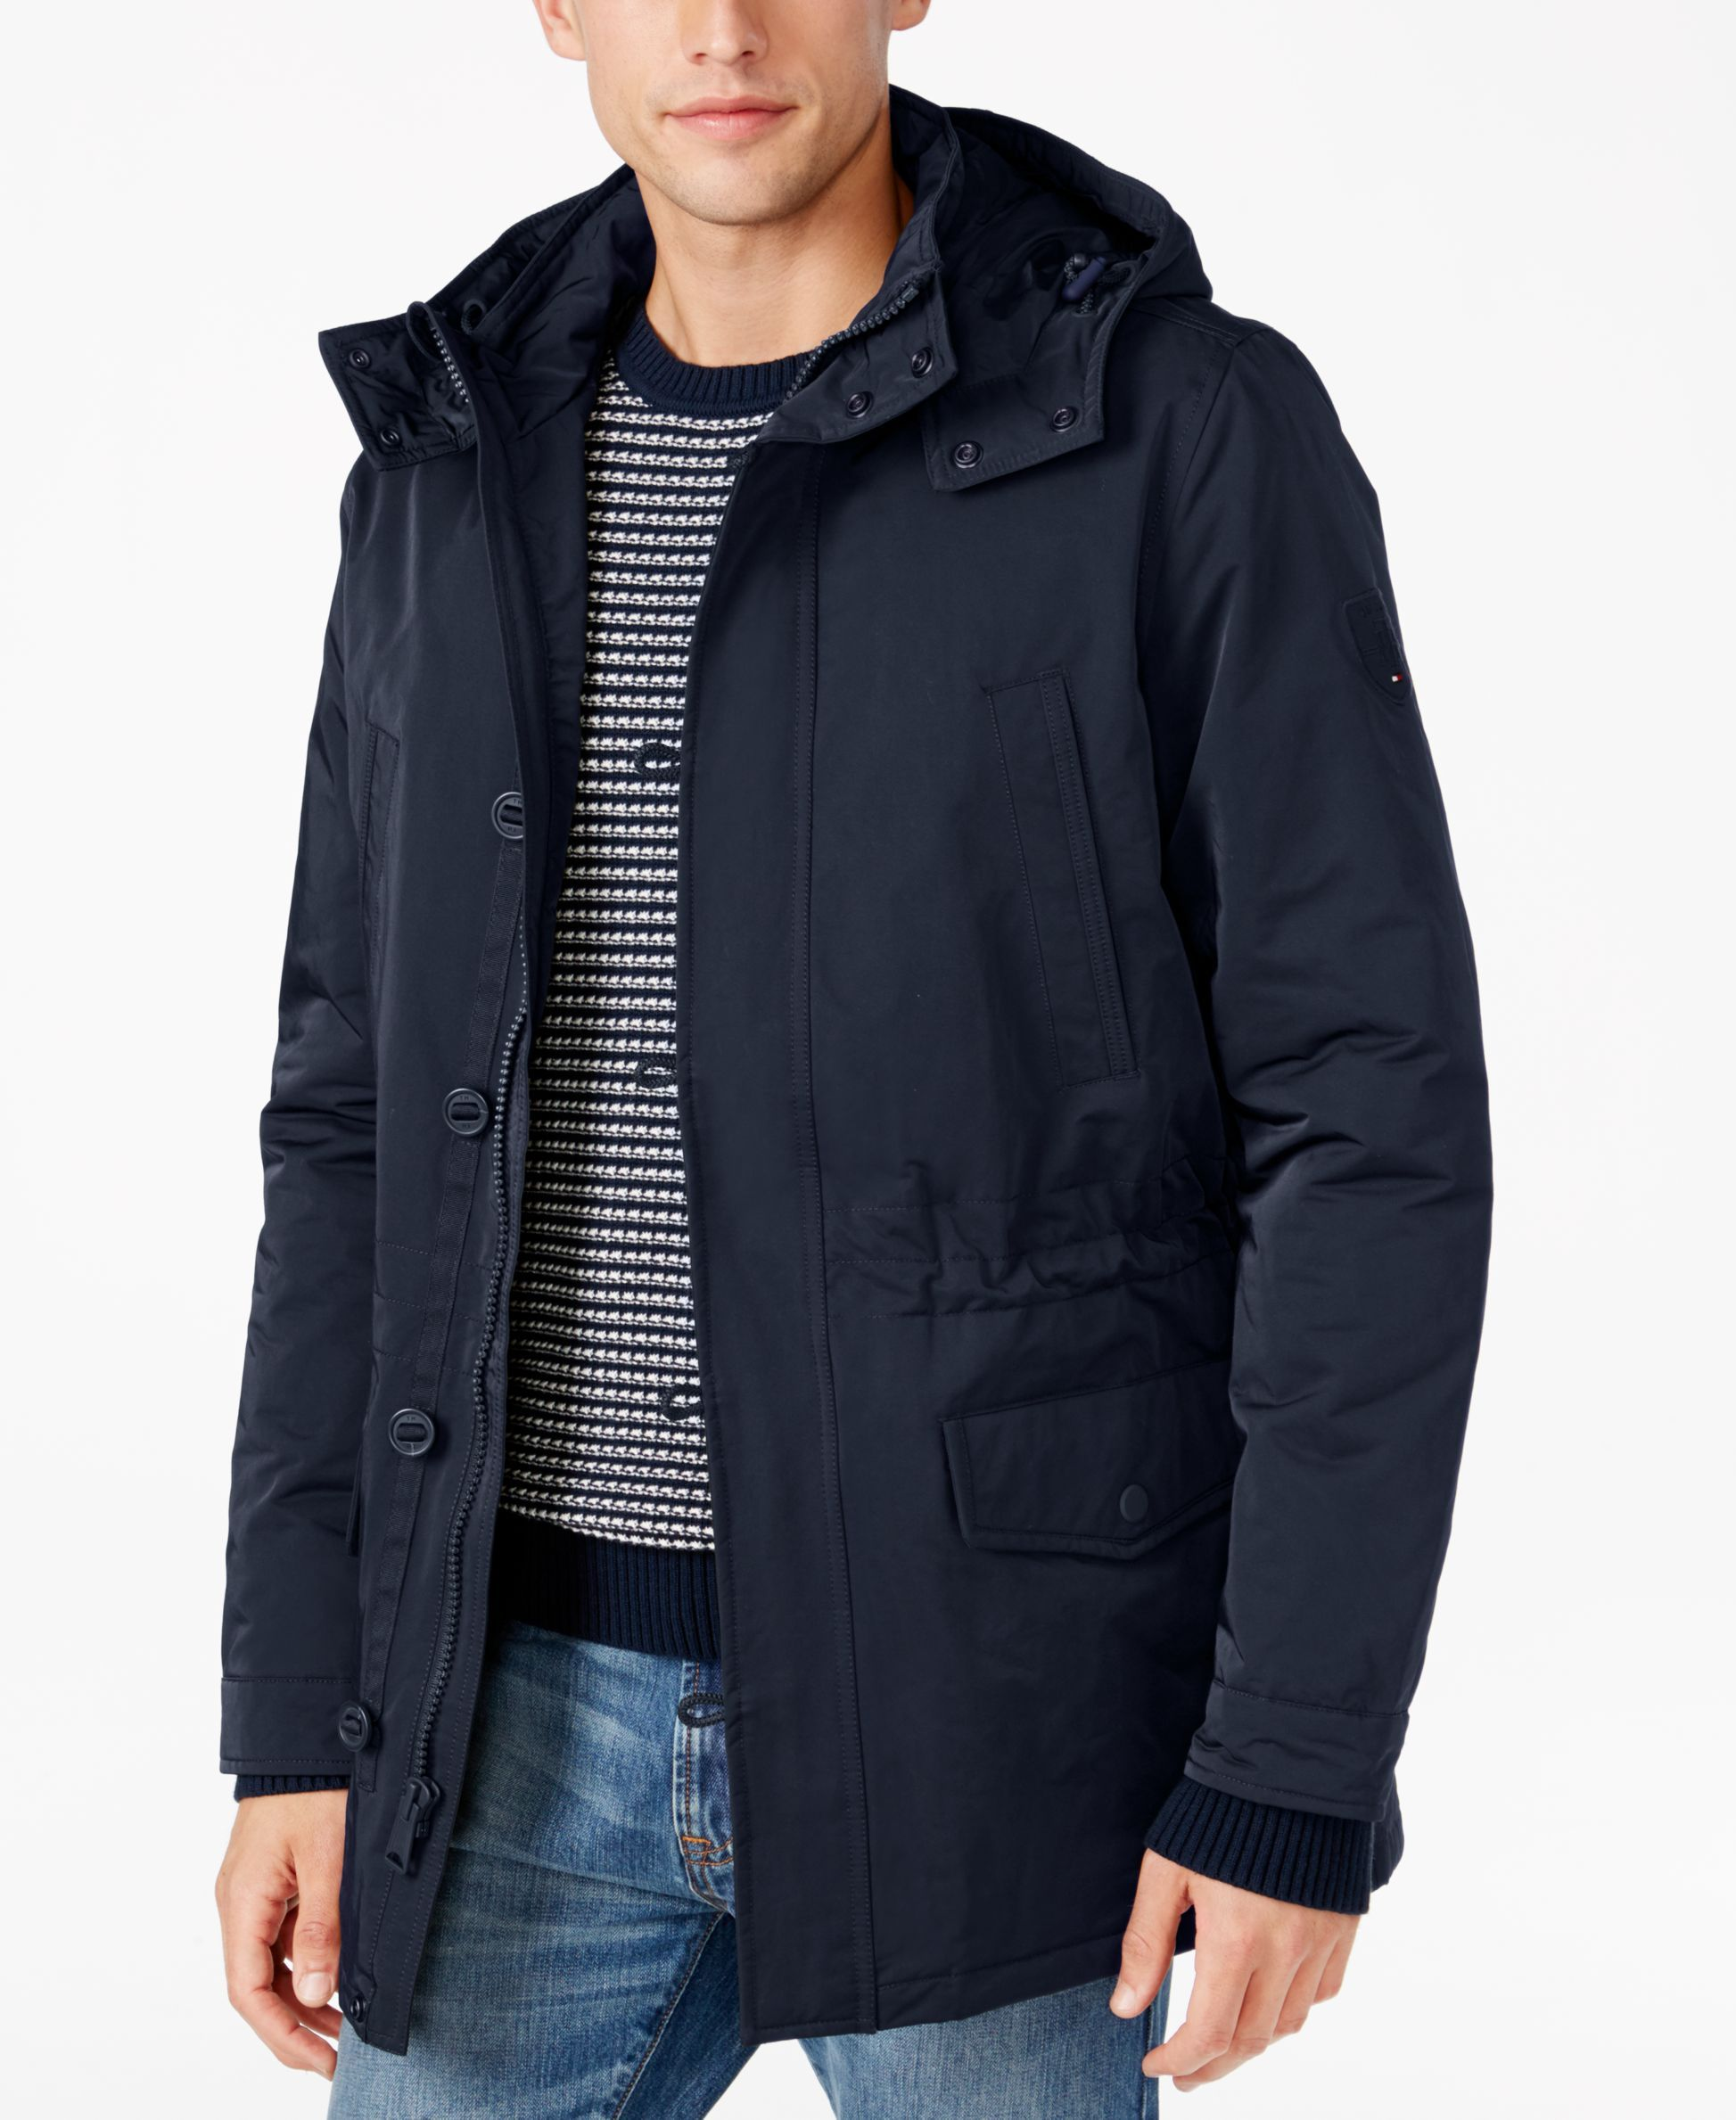 Tommy Hilfiger Men S Gibson Removable Hood Jacket Tommy Hilfiger Man Tommy Hilfiger Jackets [ 2378 x 1947 Pixel ]